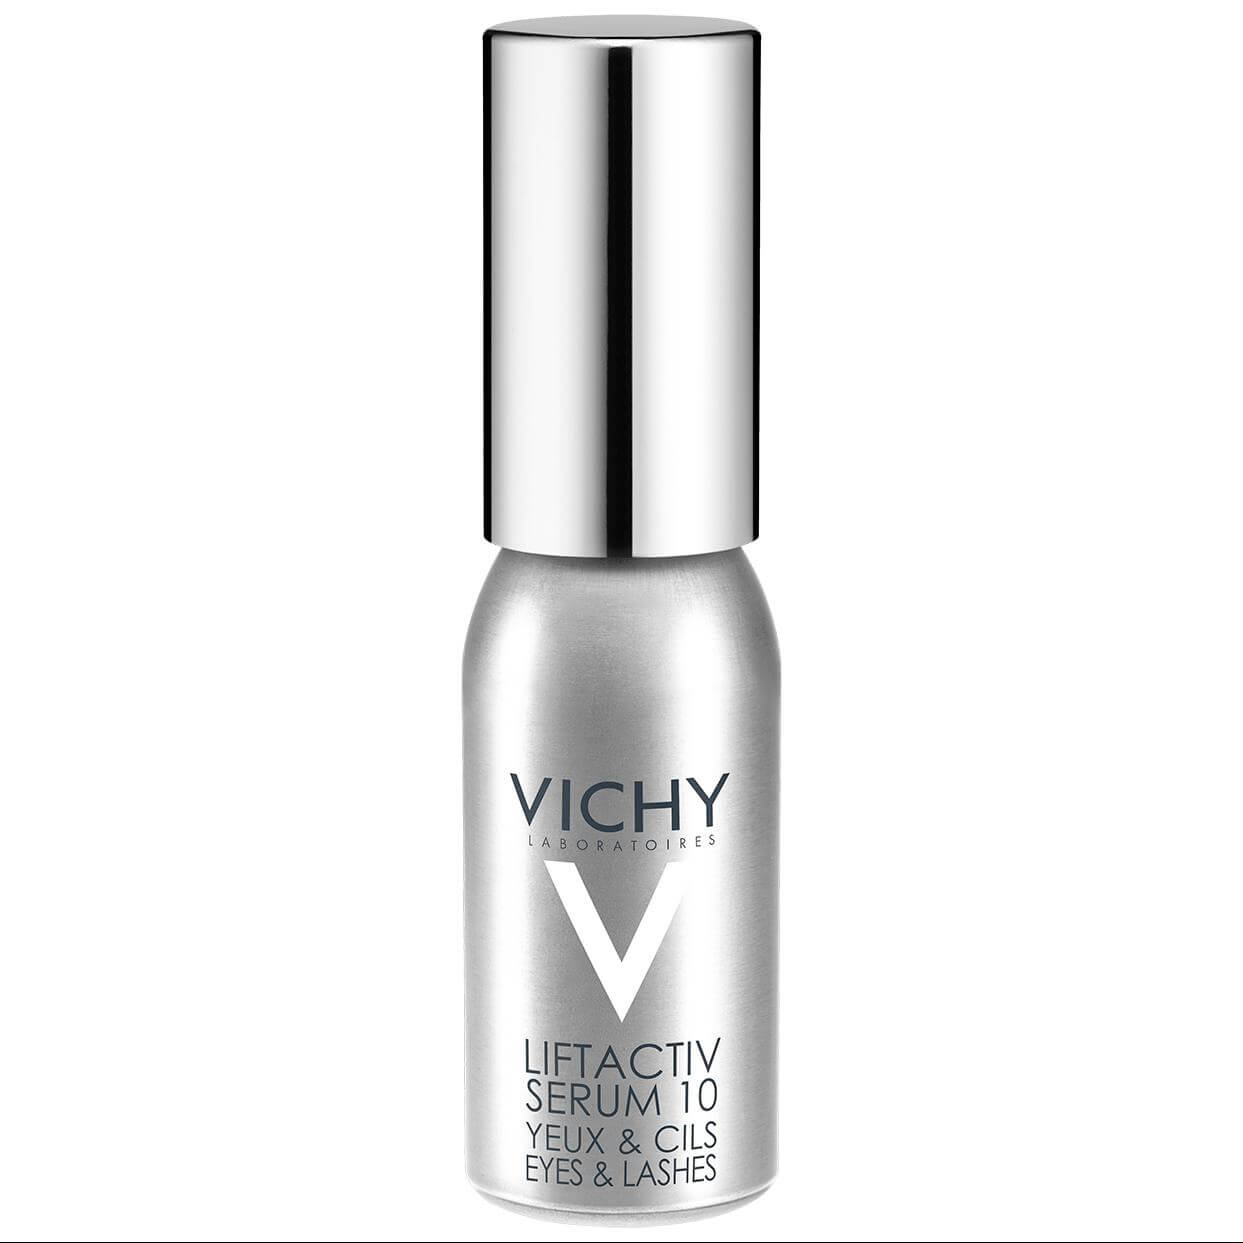 Vichy Liftactiv Derm Source Serum 10 Μάτια & Βλεφαρίδες 15ml